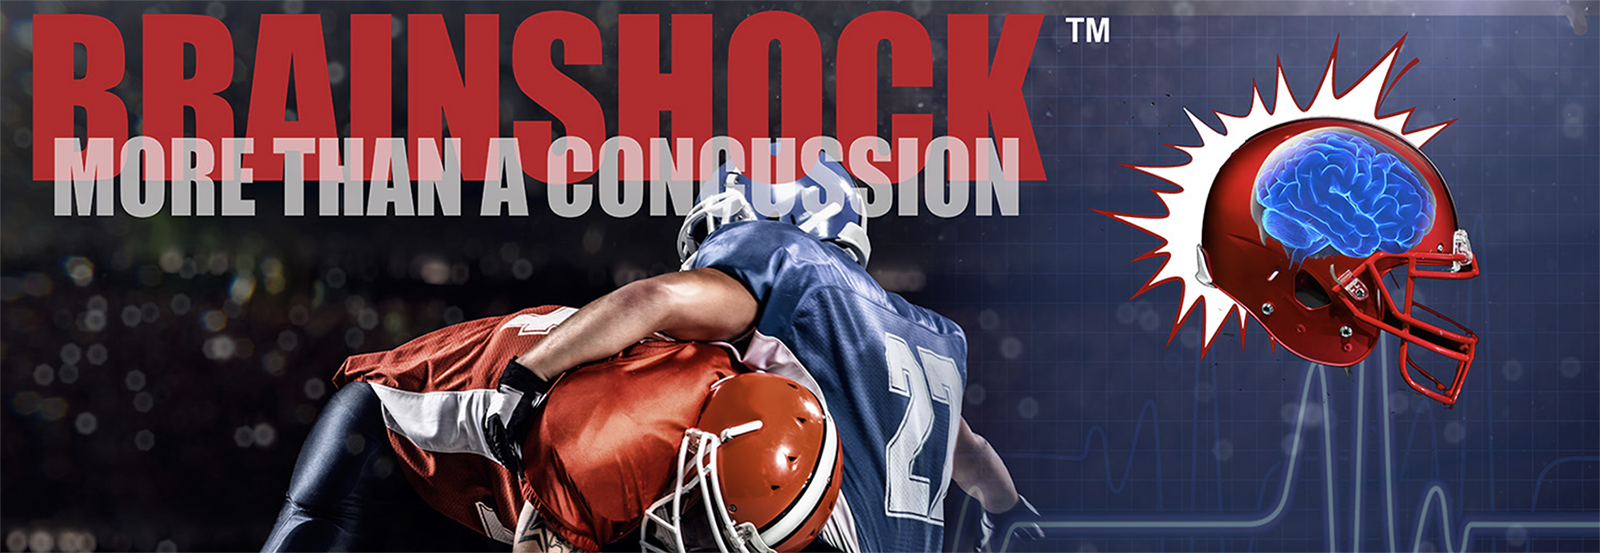 brainshock concussion